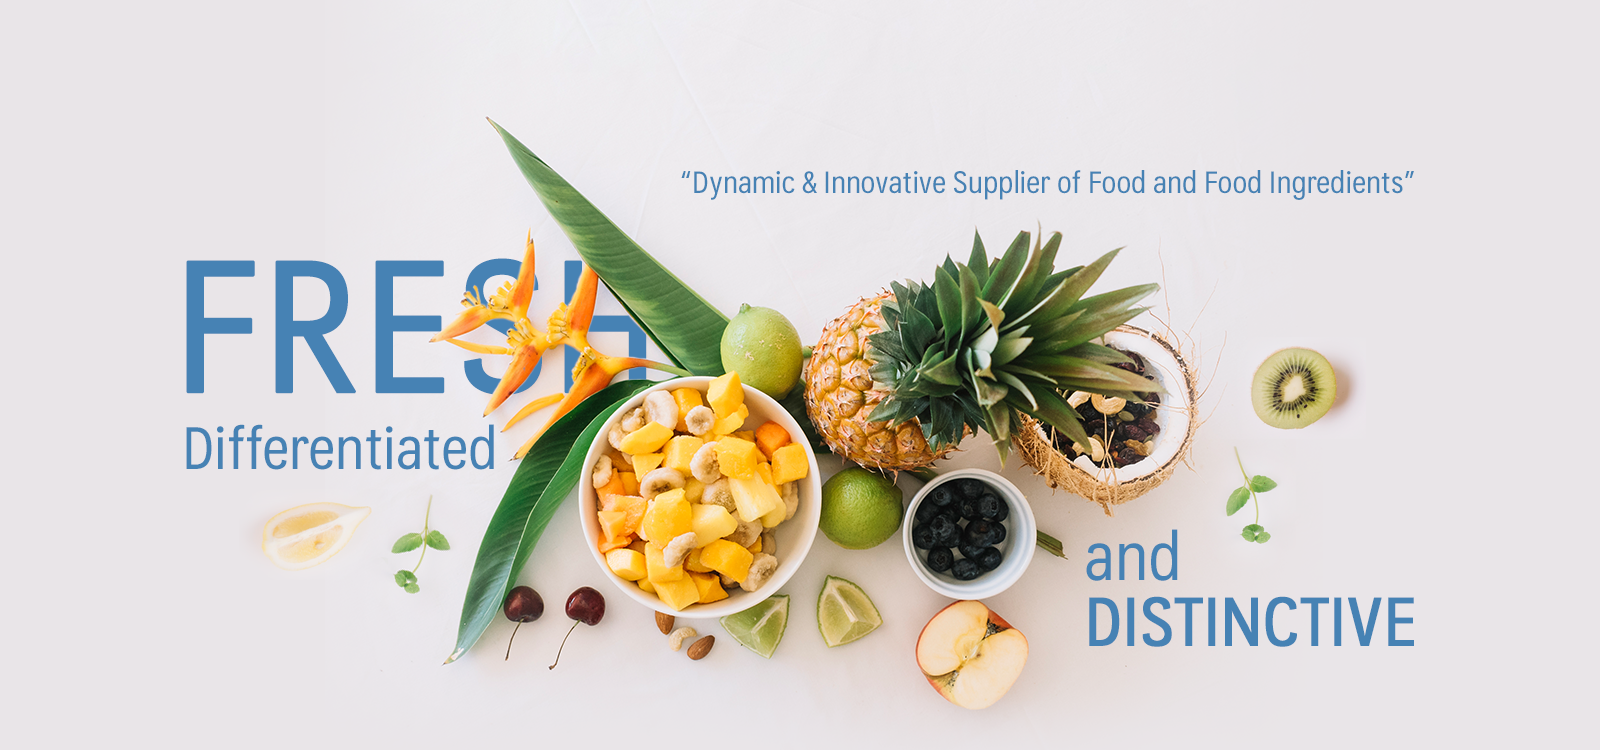 Dynamic & Innovative Supplier of Food and Food Ingredients